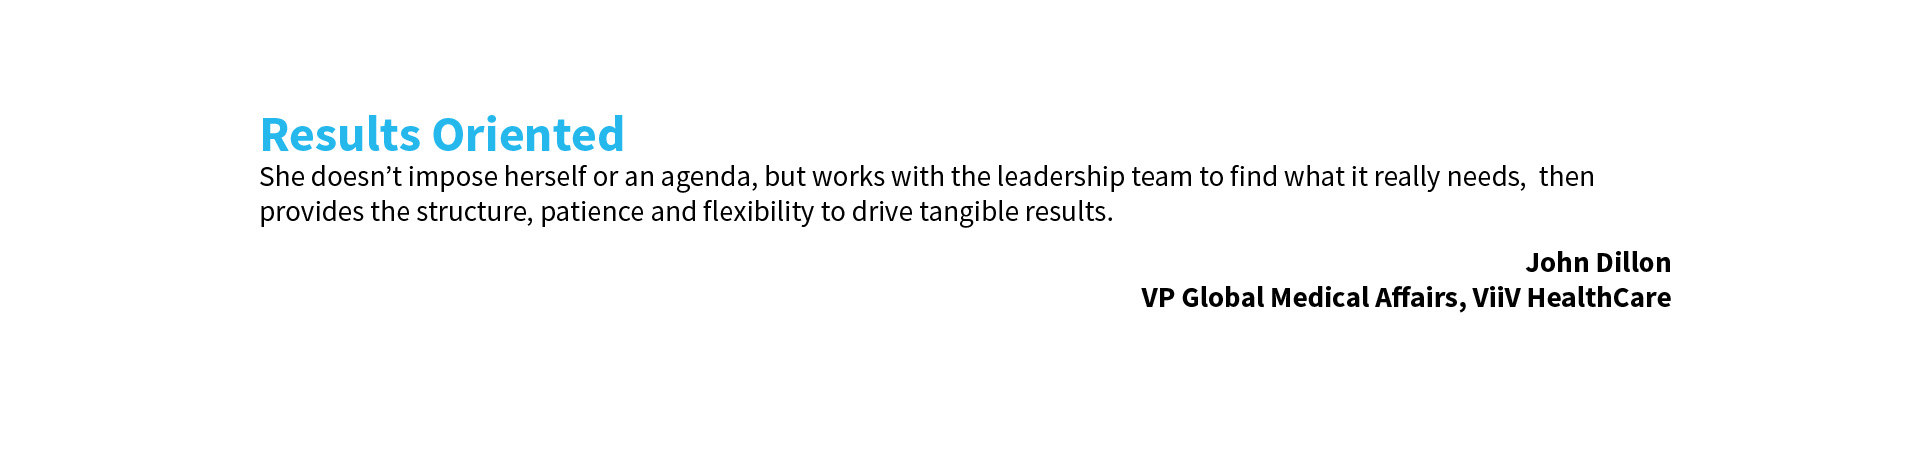 Kathryn Simpson Consulting Limited - Client Testimonial 5